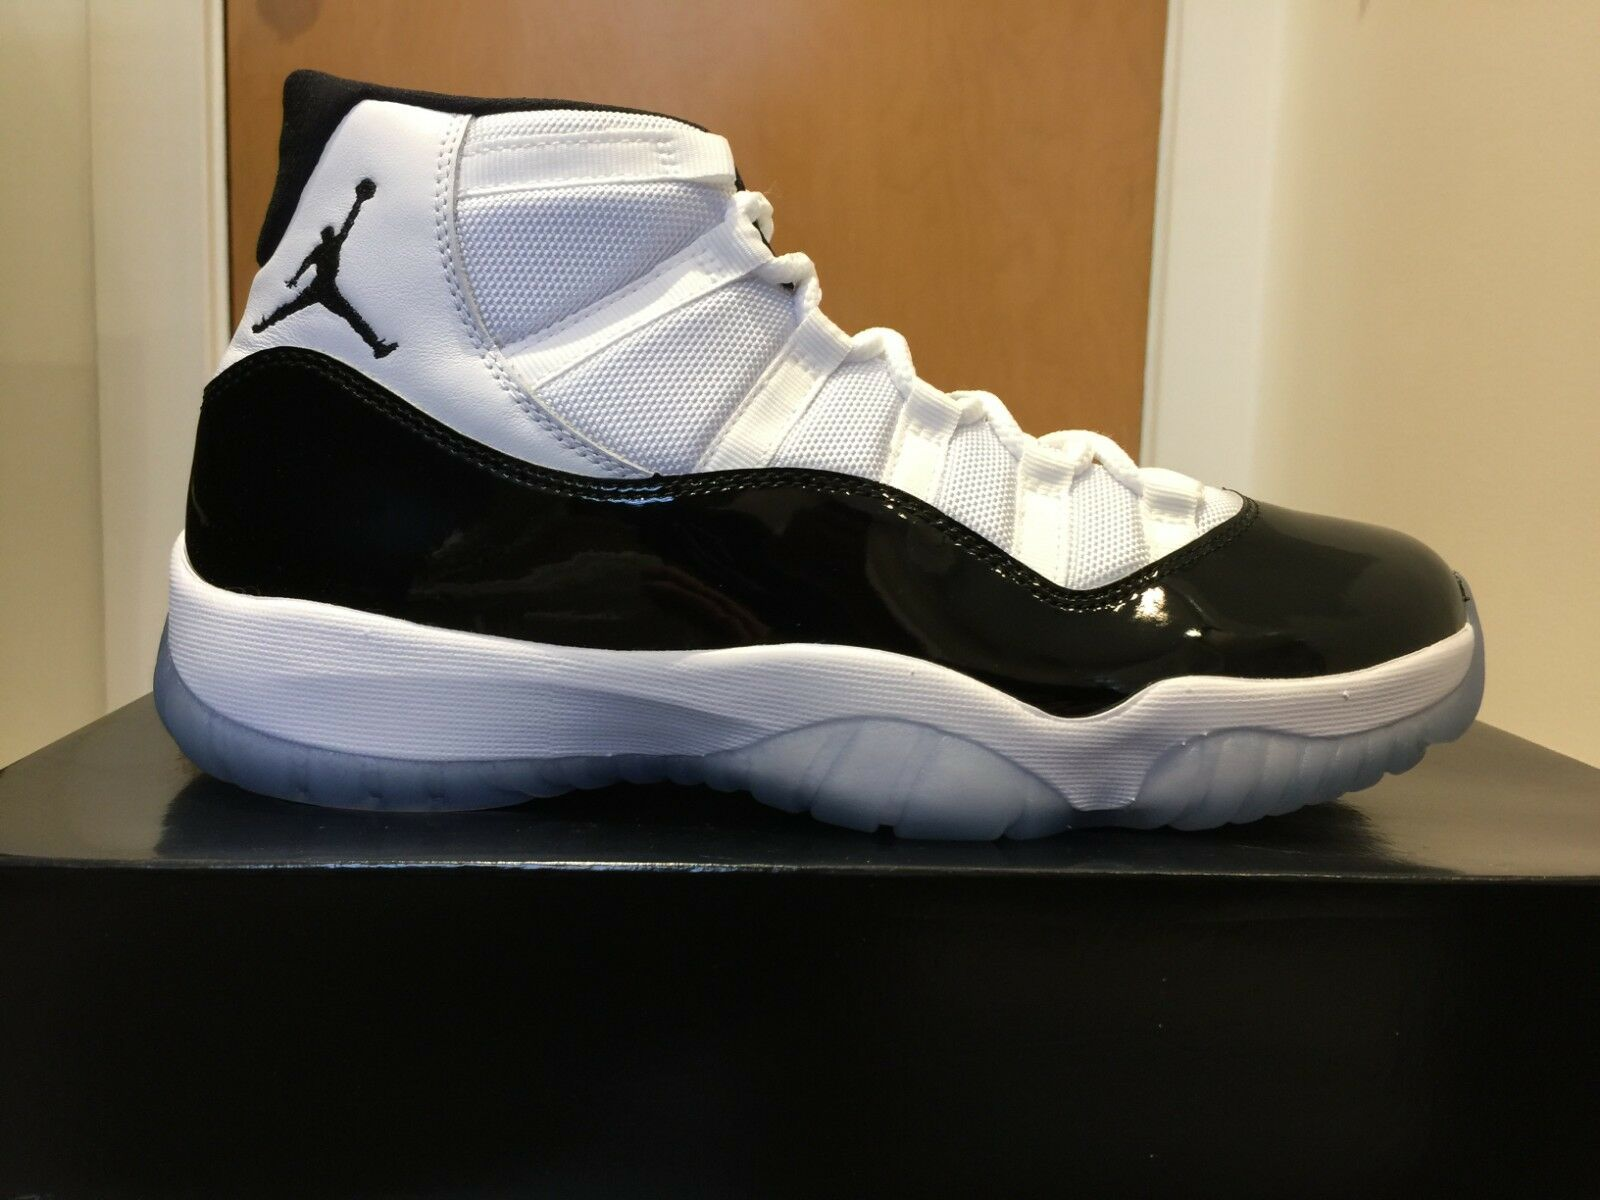 Nike Air Jordan 11 Retro Concords (378037 100) SZ 9.5